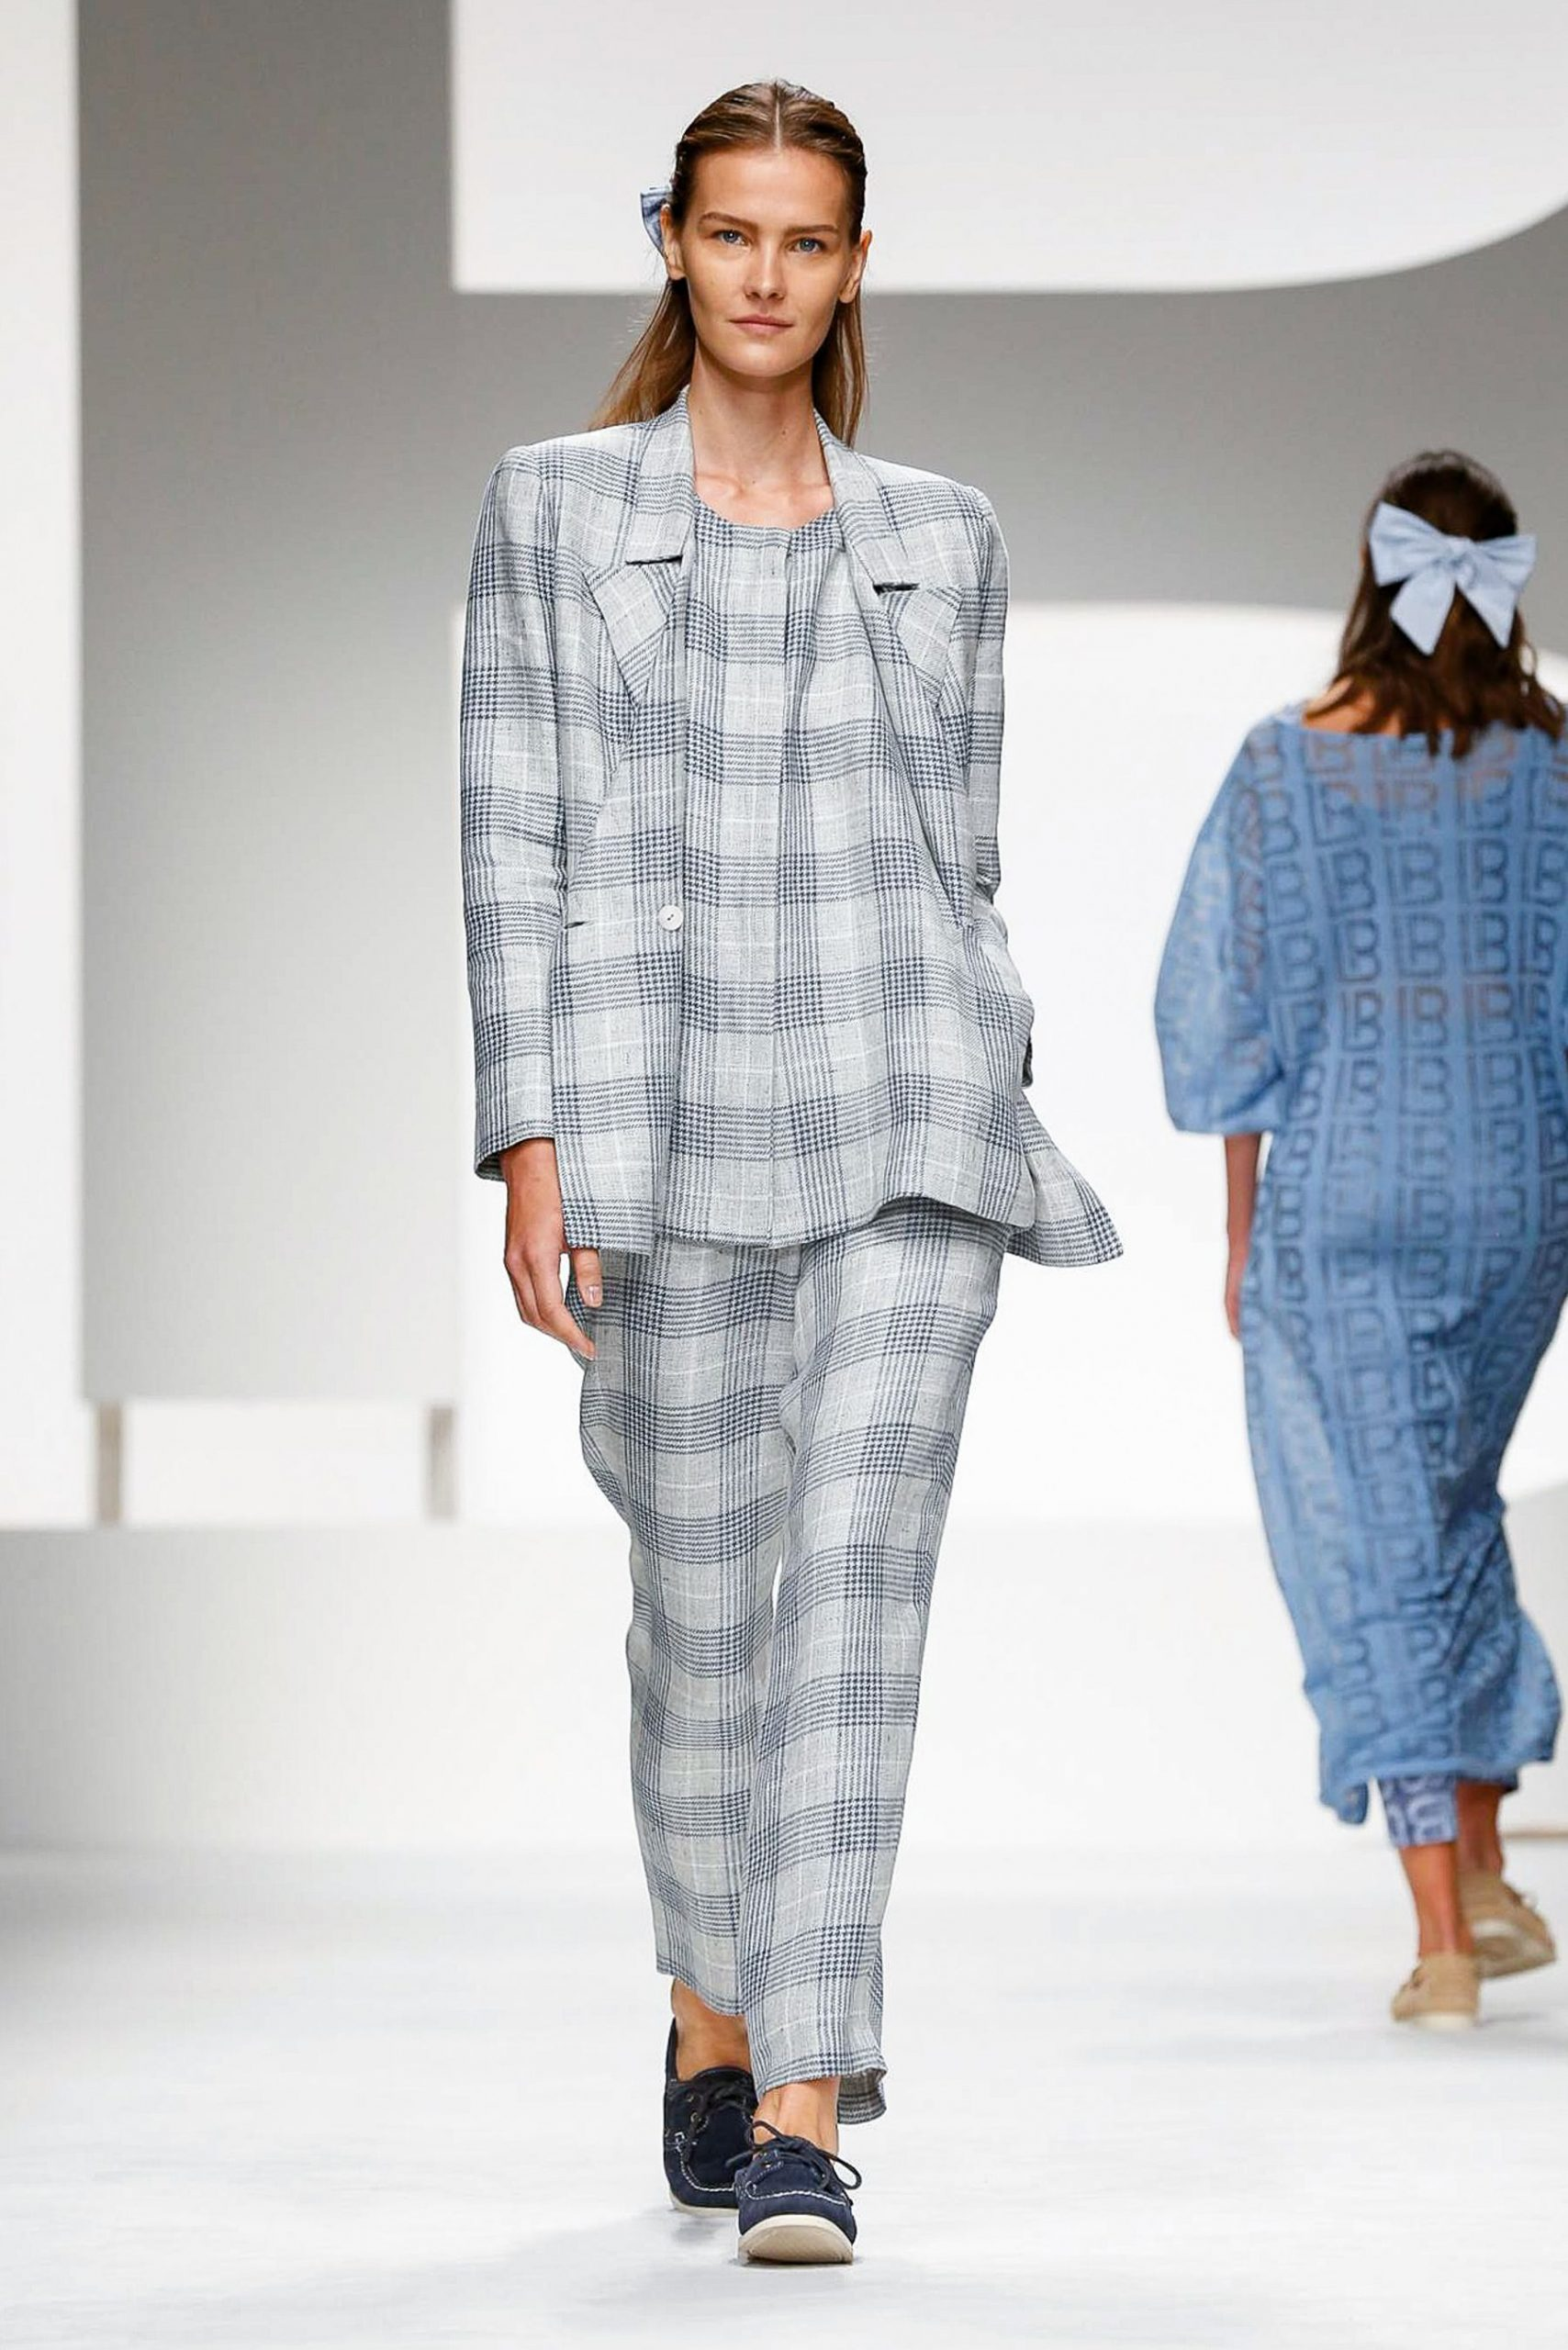 Laura Biagiotti Spring Summer 2020 Milan Fashion Week